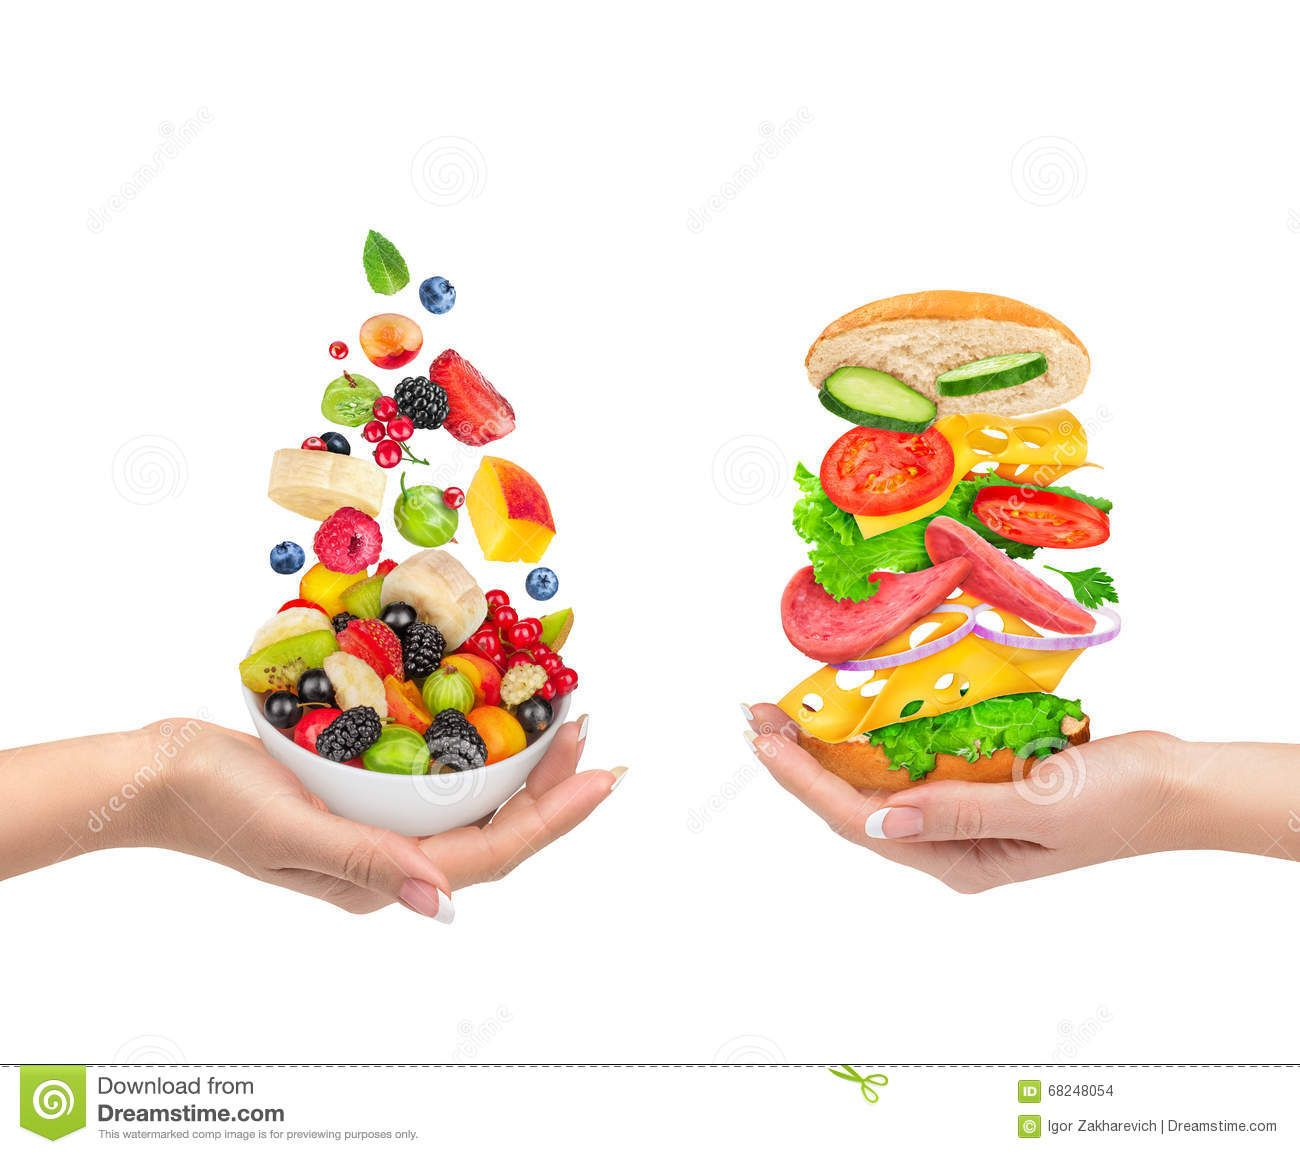 Healthy Vs Unhealthy Food Choices